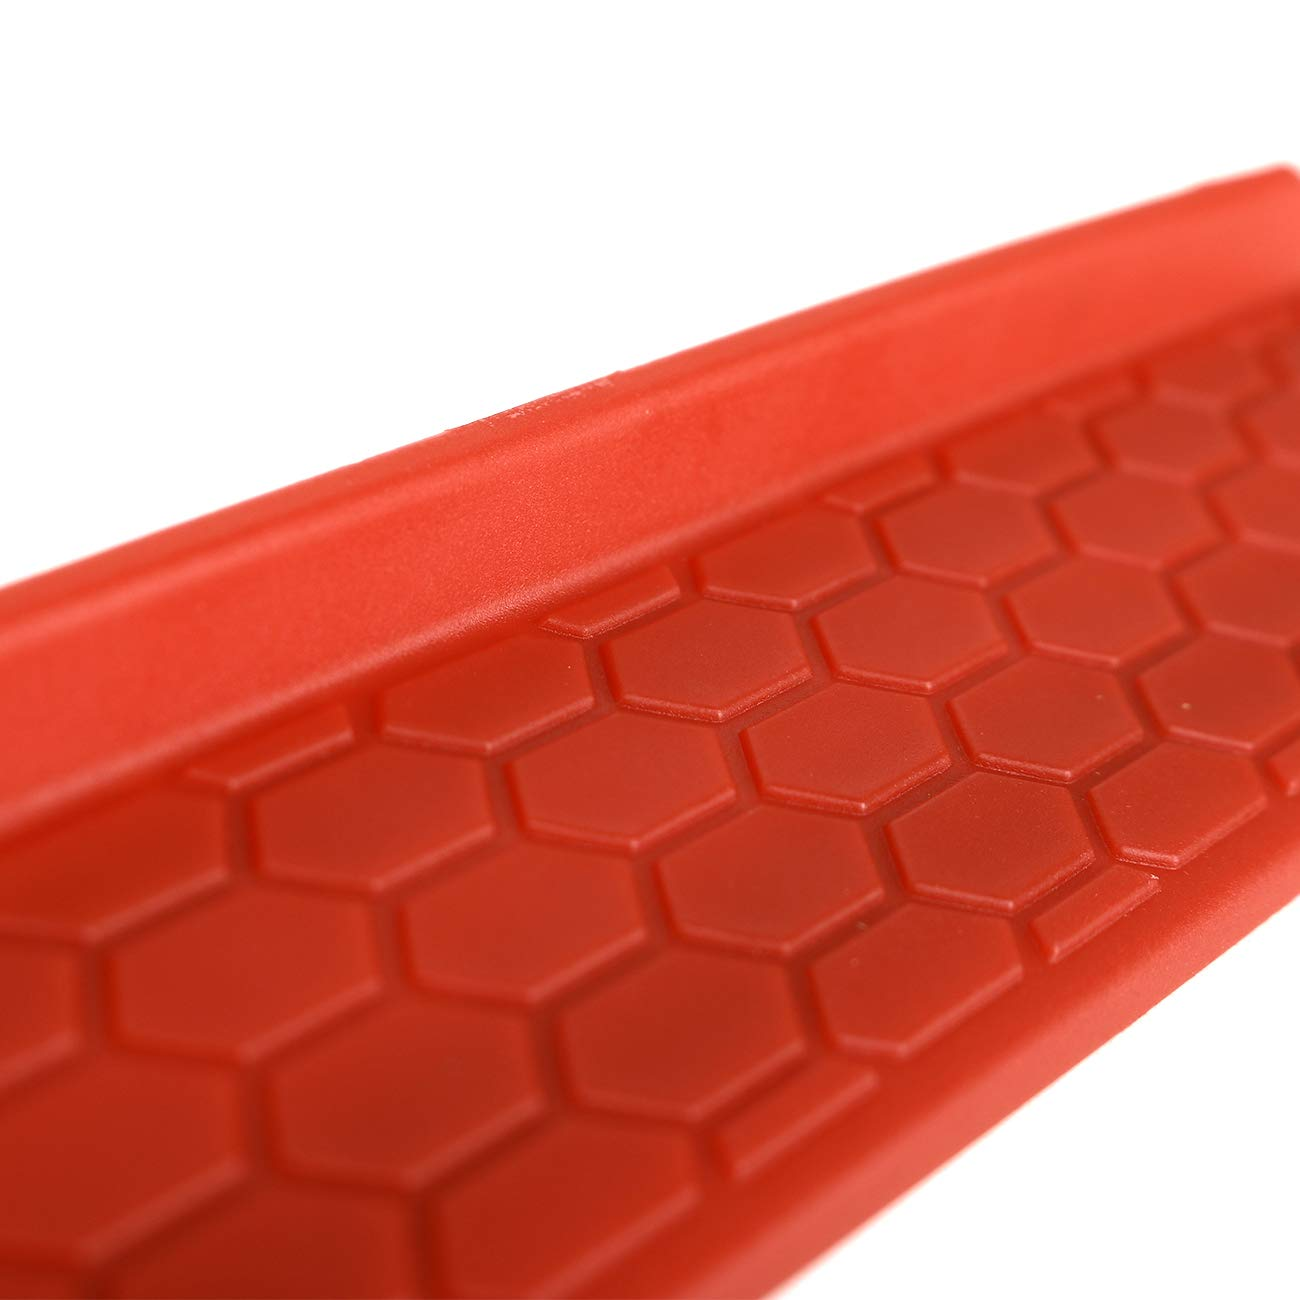 BOXATDOOR Honeycomb for 2018 2019 Jeep Wrangler JL 4Door Sill Protector Scuff Plate Entry Guards Protector Trim Red